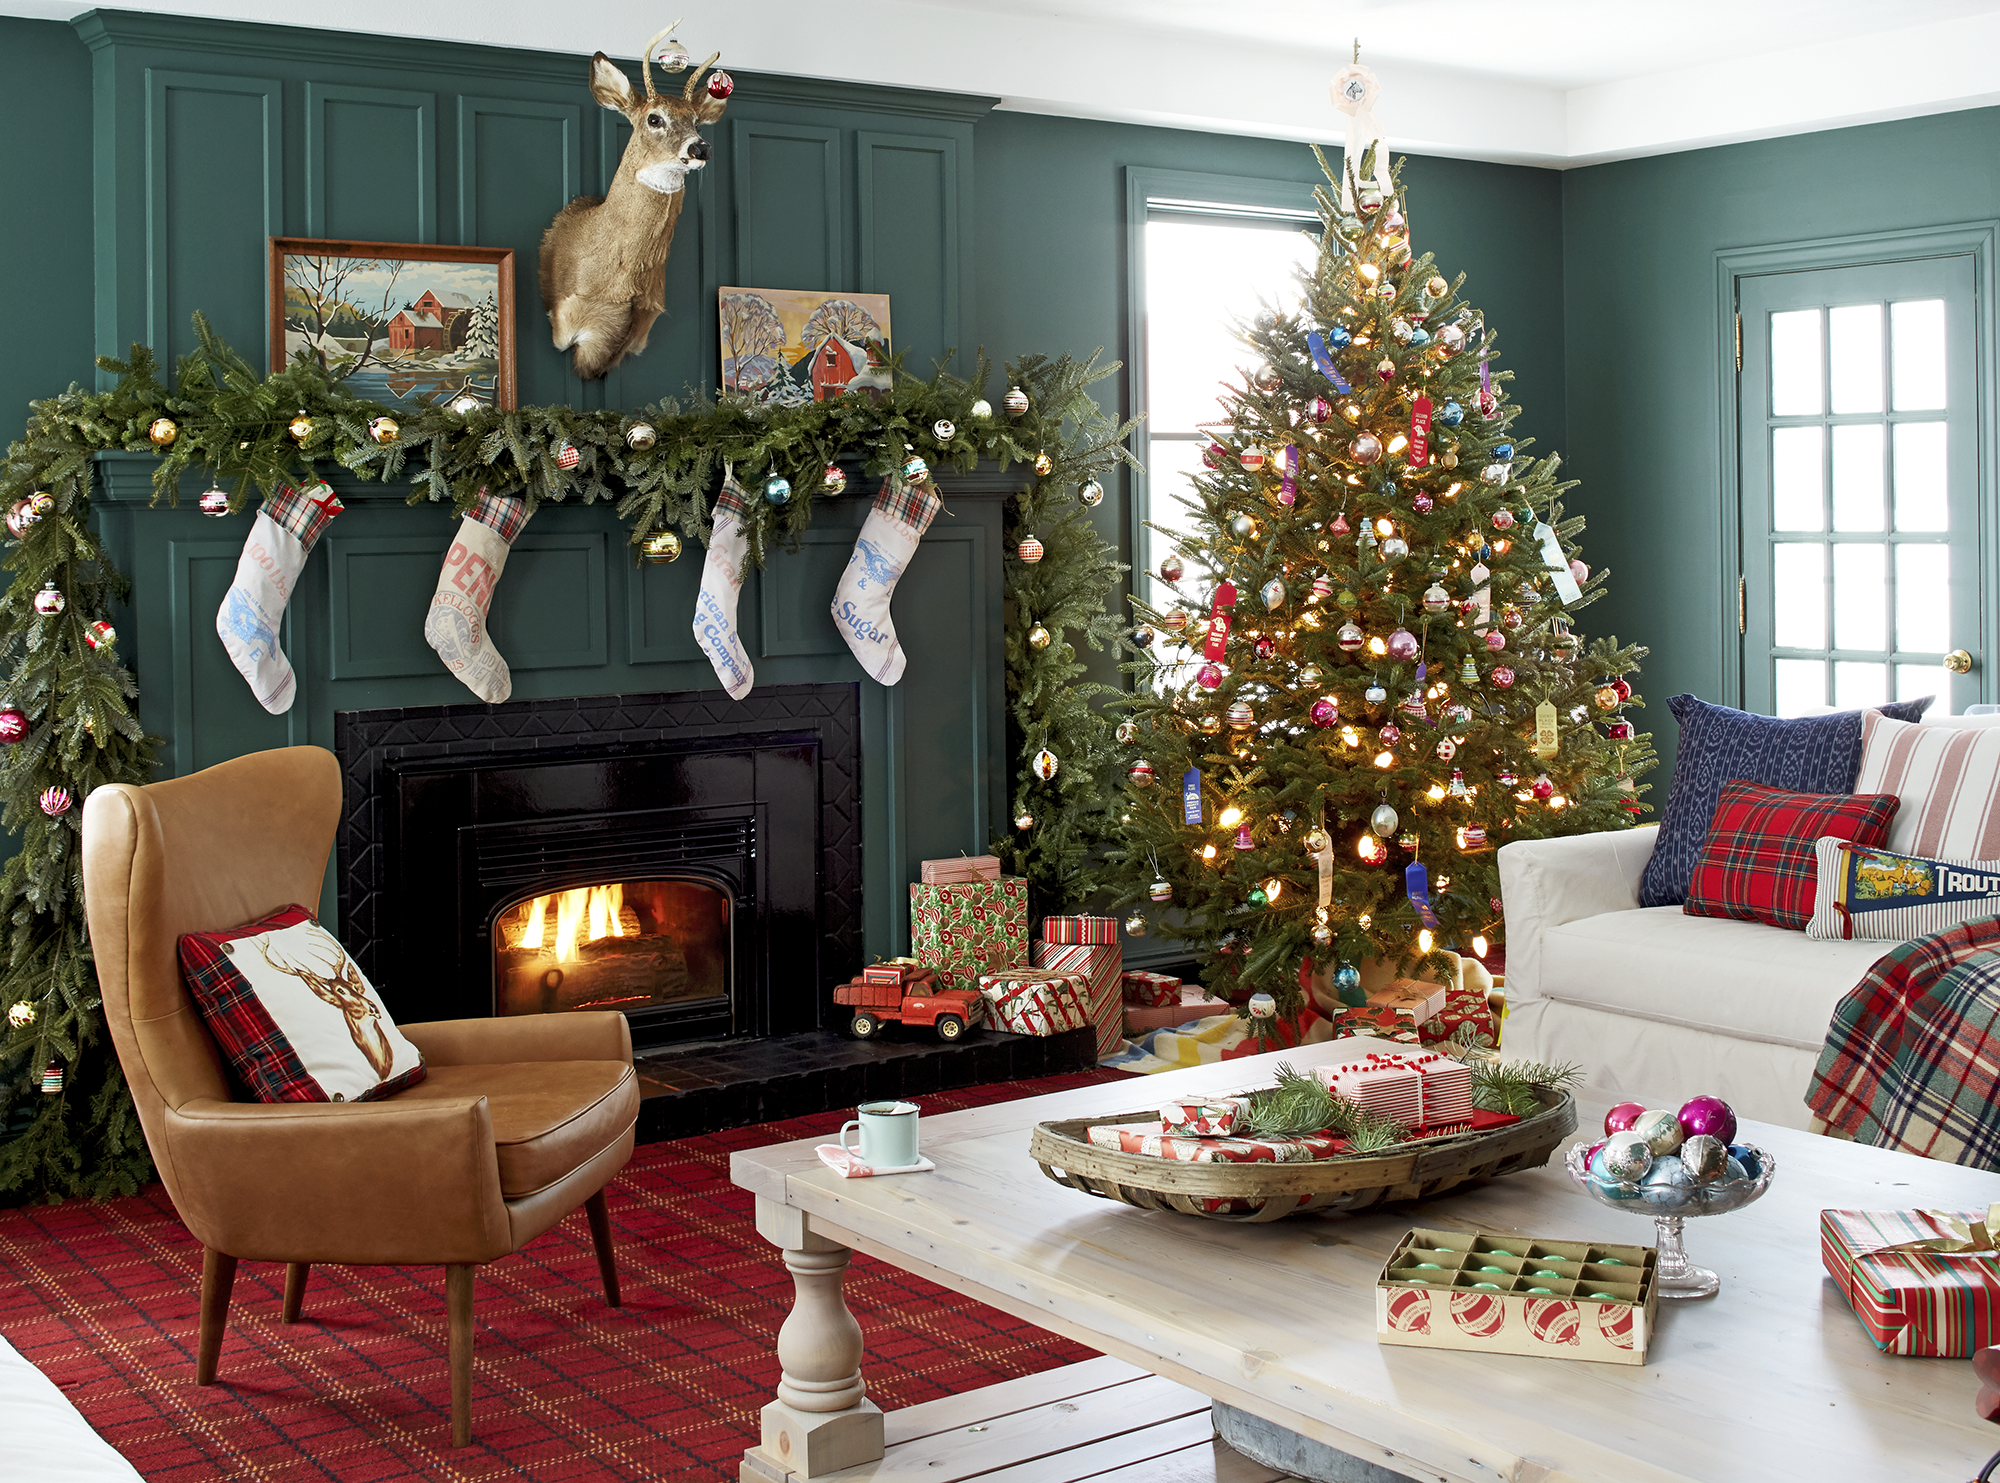 100 country christmas decorations holiday decorating ideas 2018 - How To Decorate Living Room For Christmas